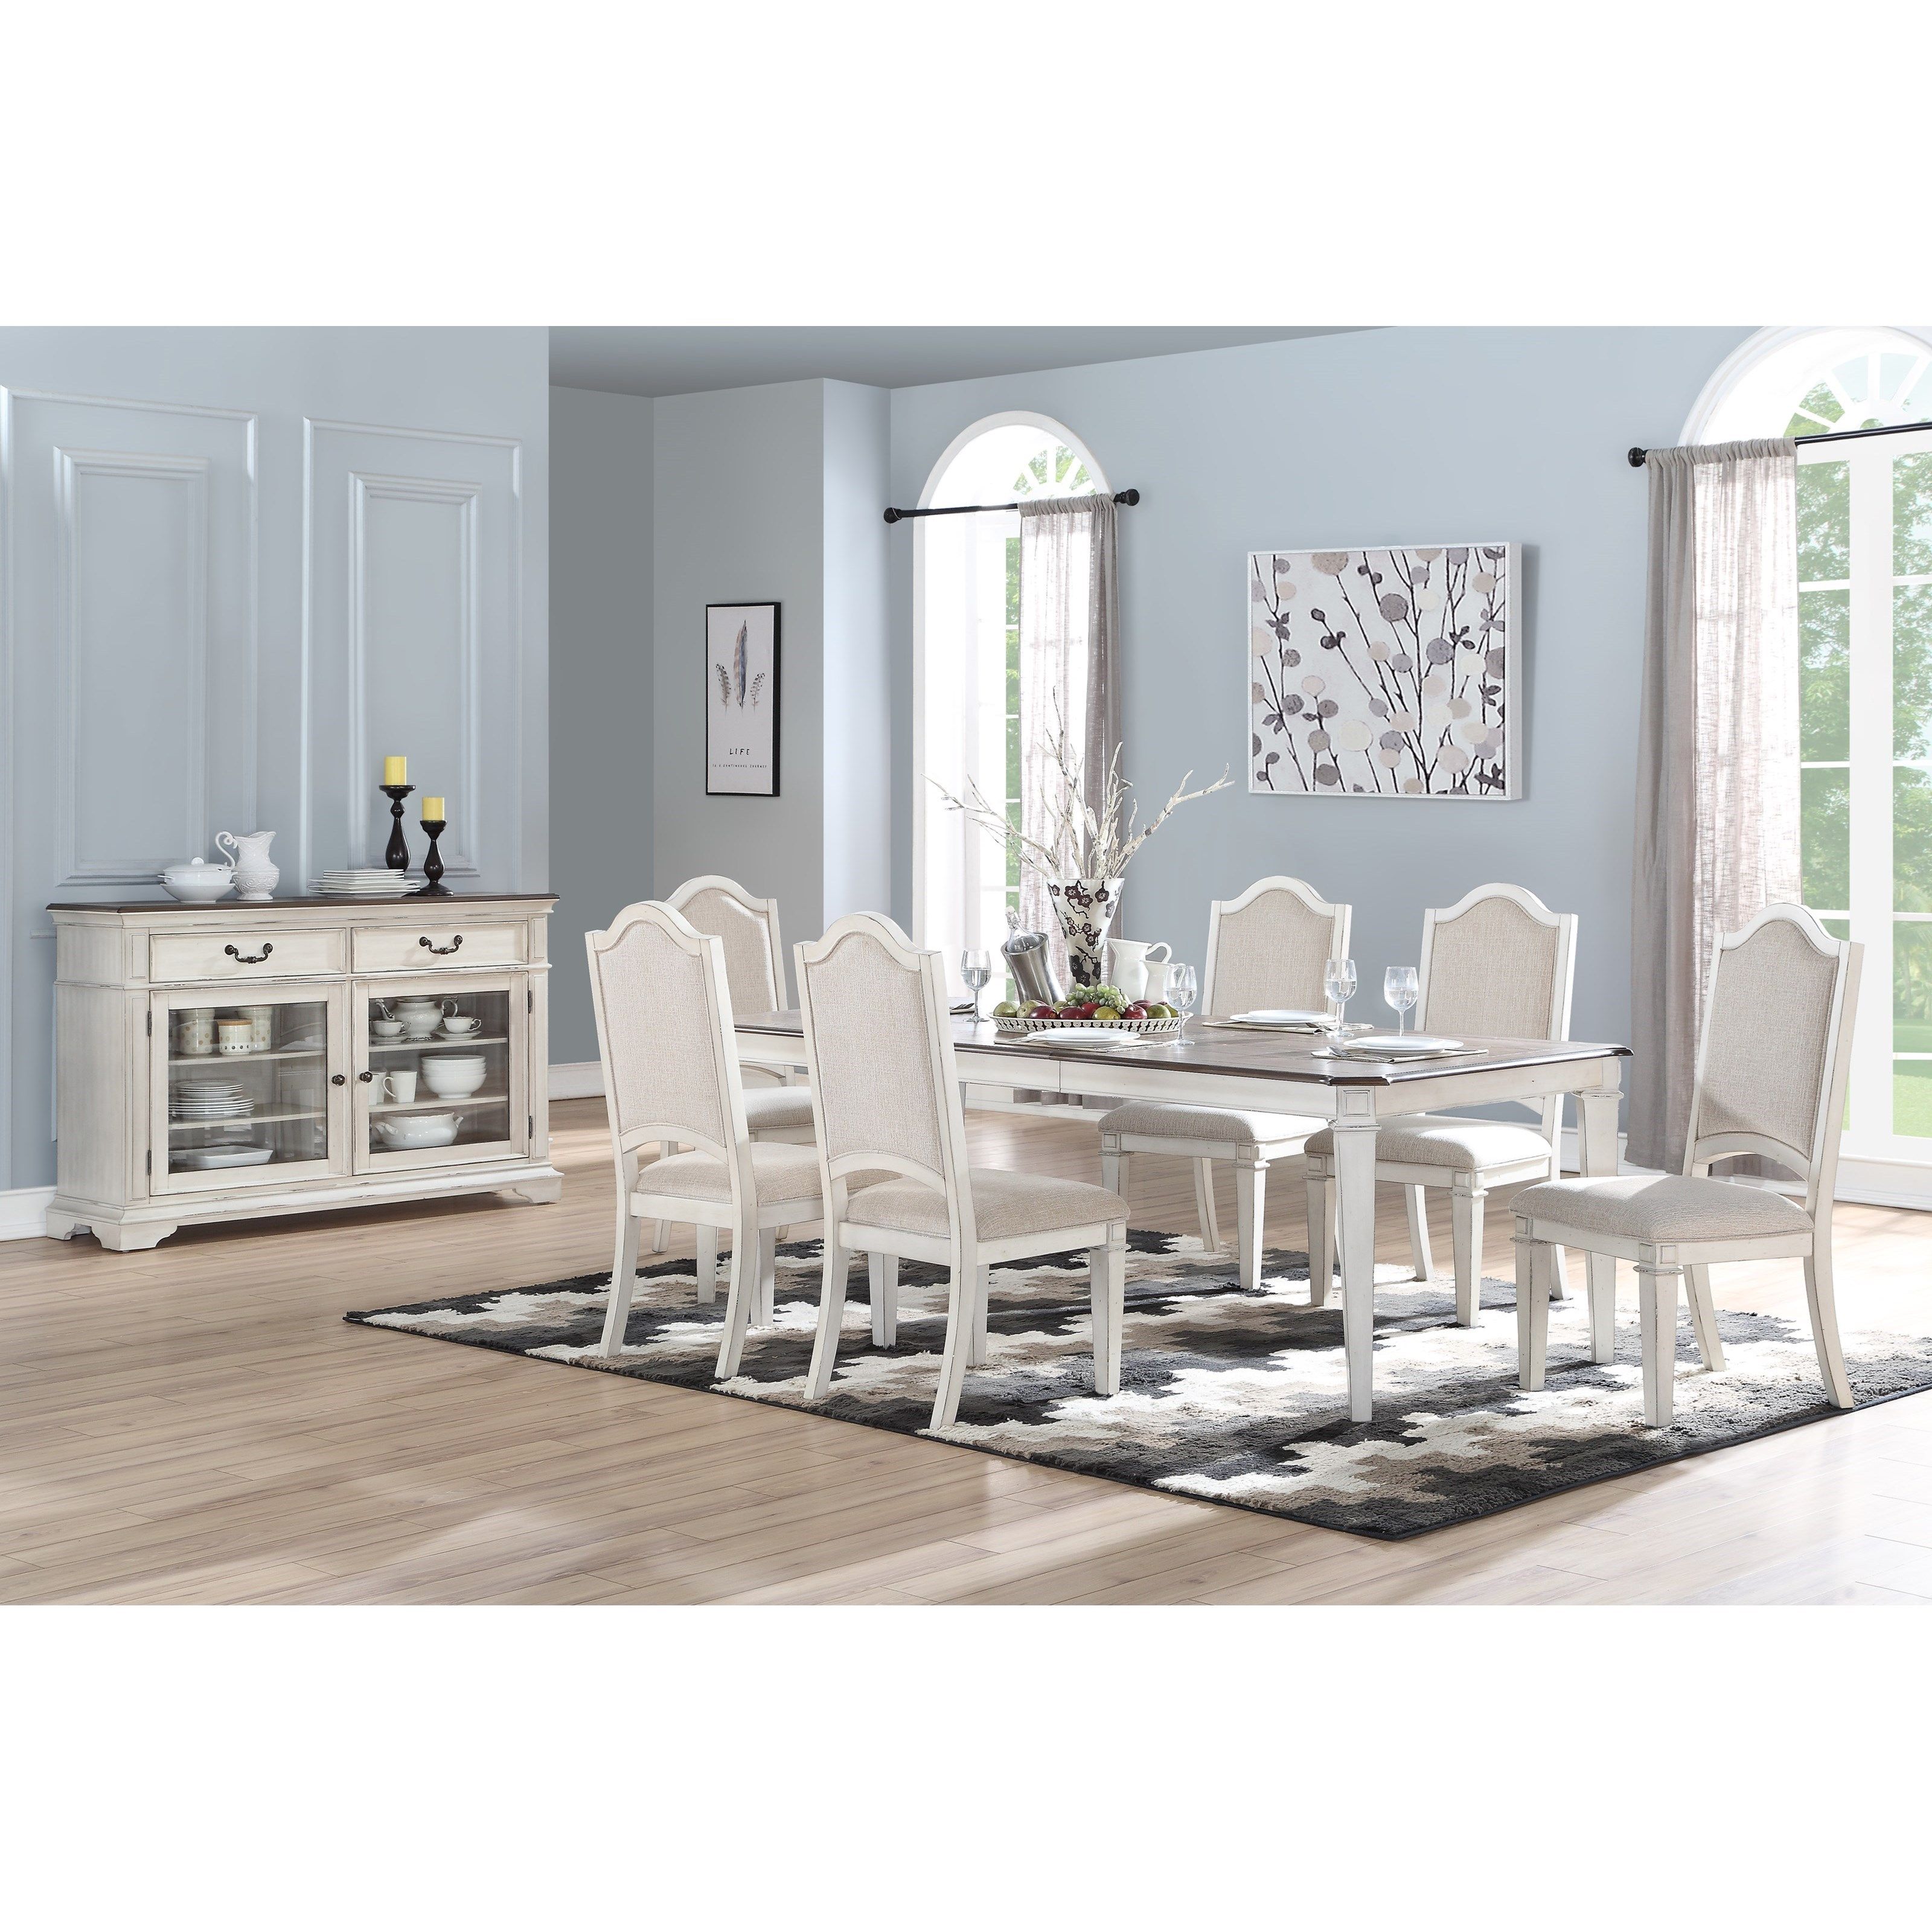 Anastasia Dining Room Group by New Classic at Carolina Direct